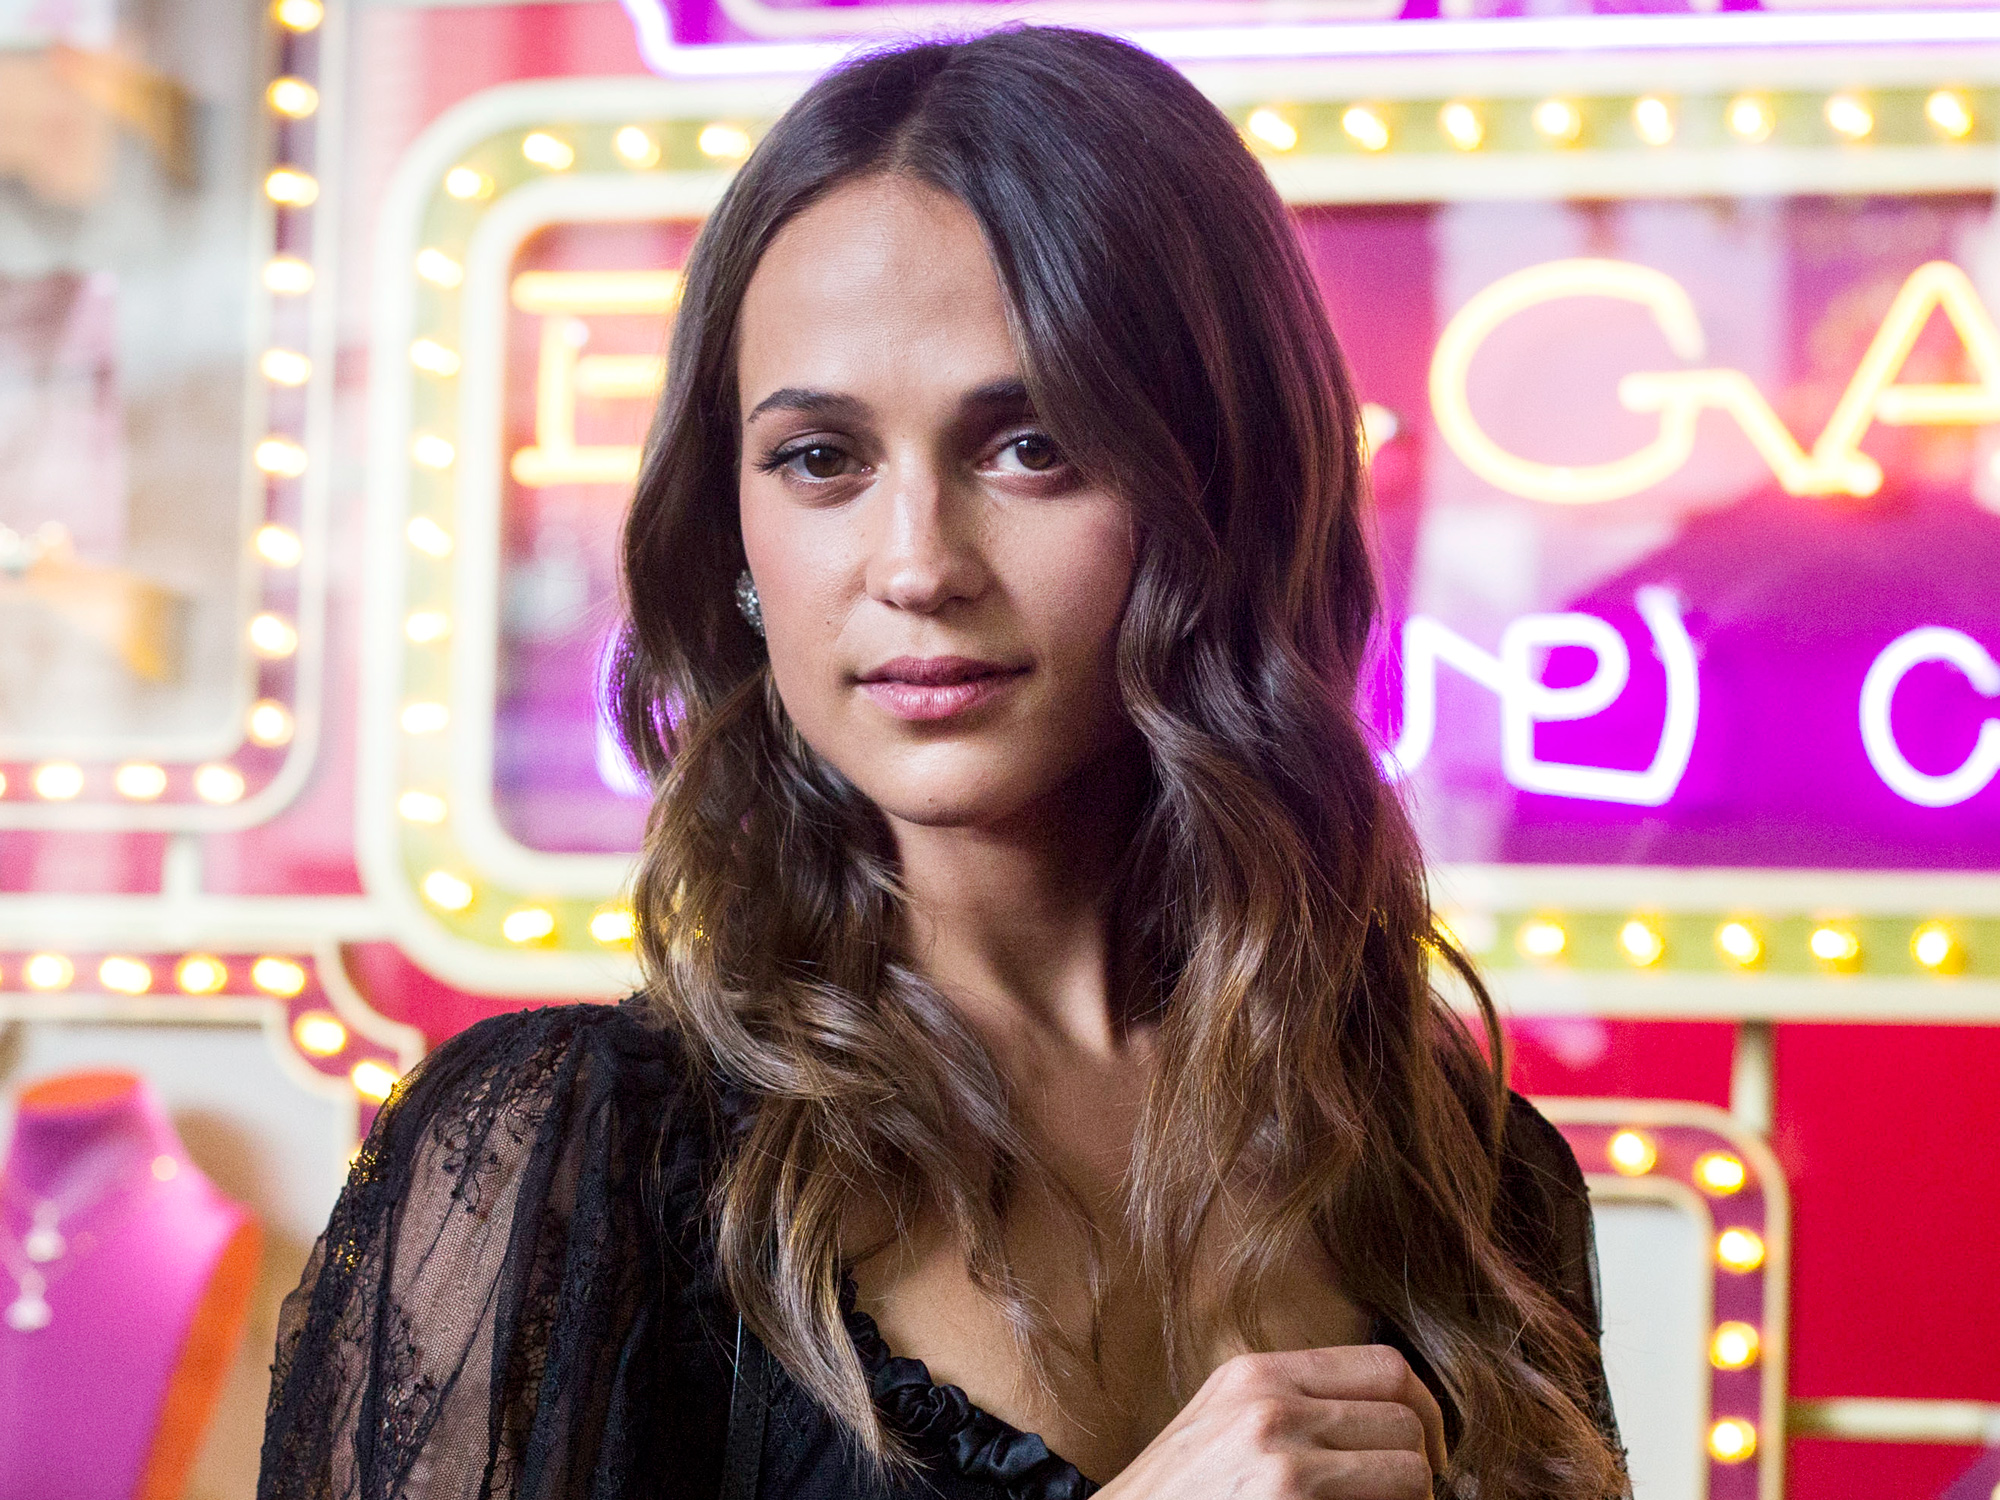 Watch the Sweet Way Alicia Vikander TalksAbout Raising a Family One Day